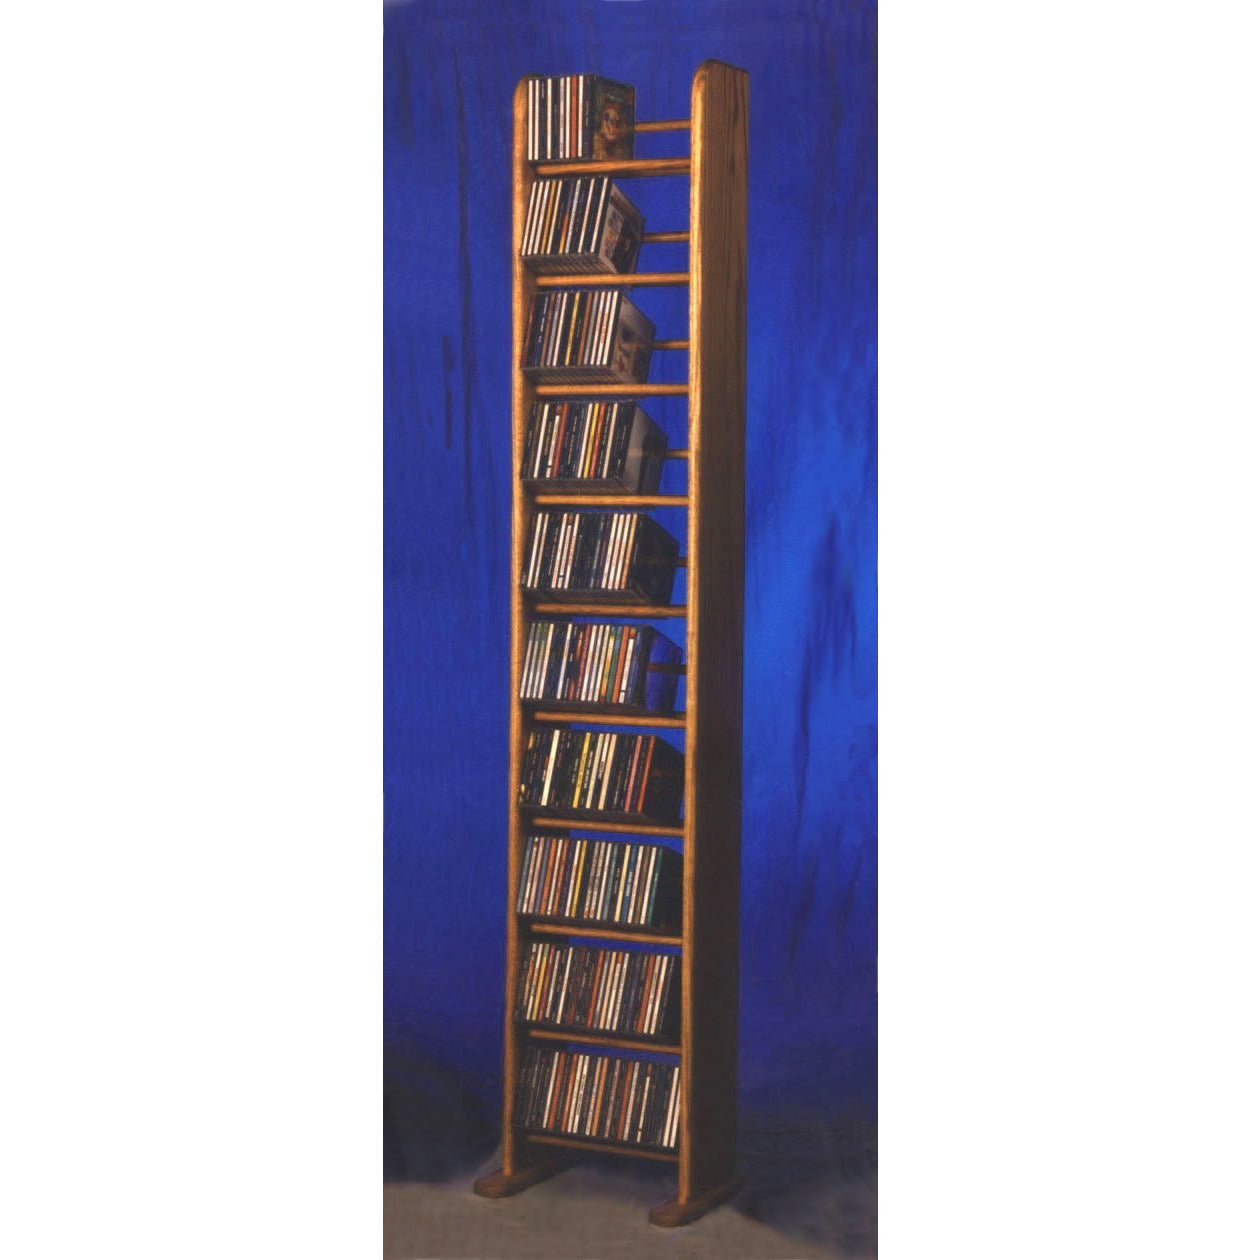 Model 1004 CD Storage Rack - honey oak